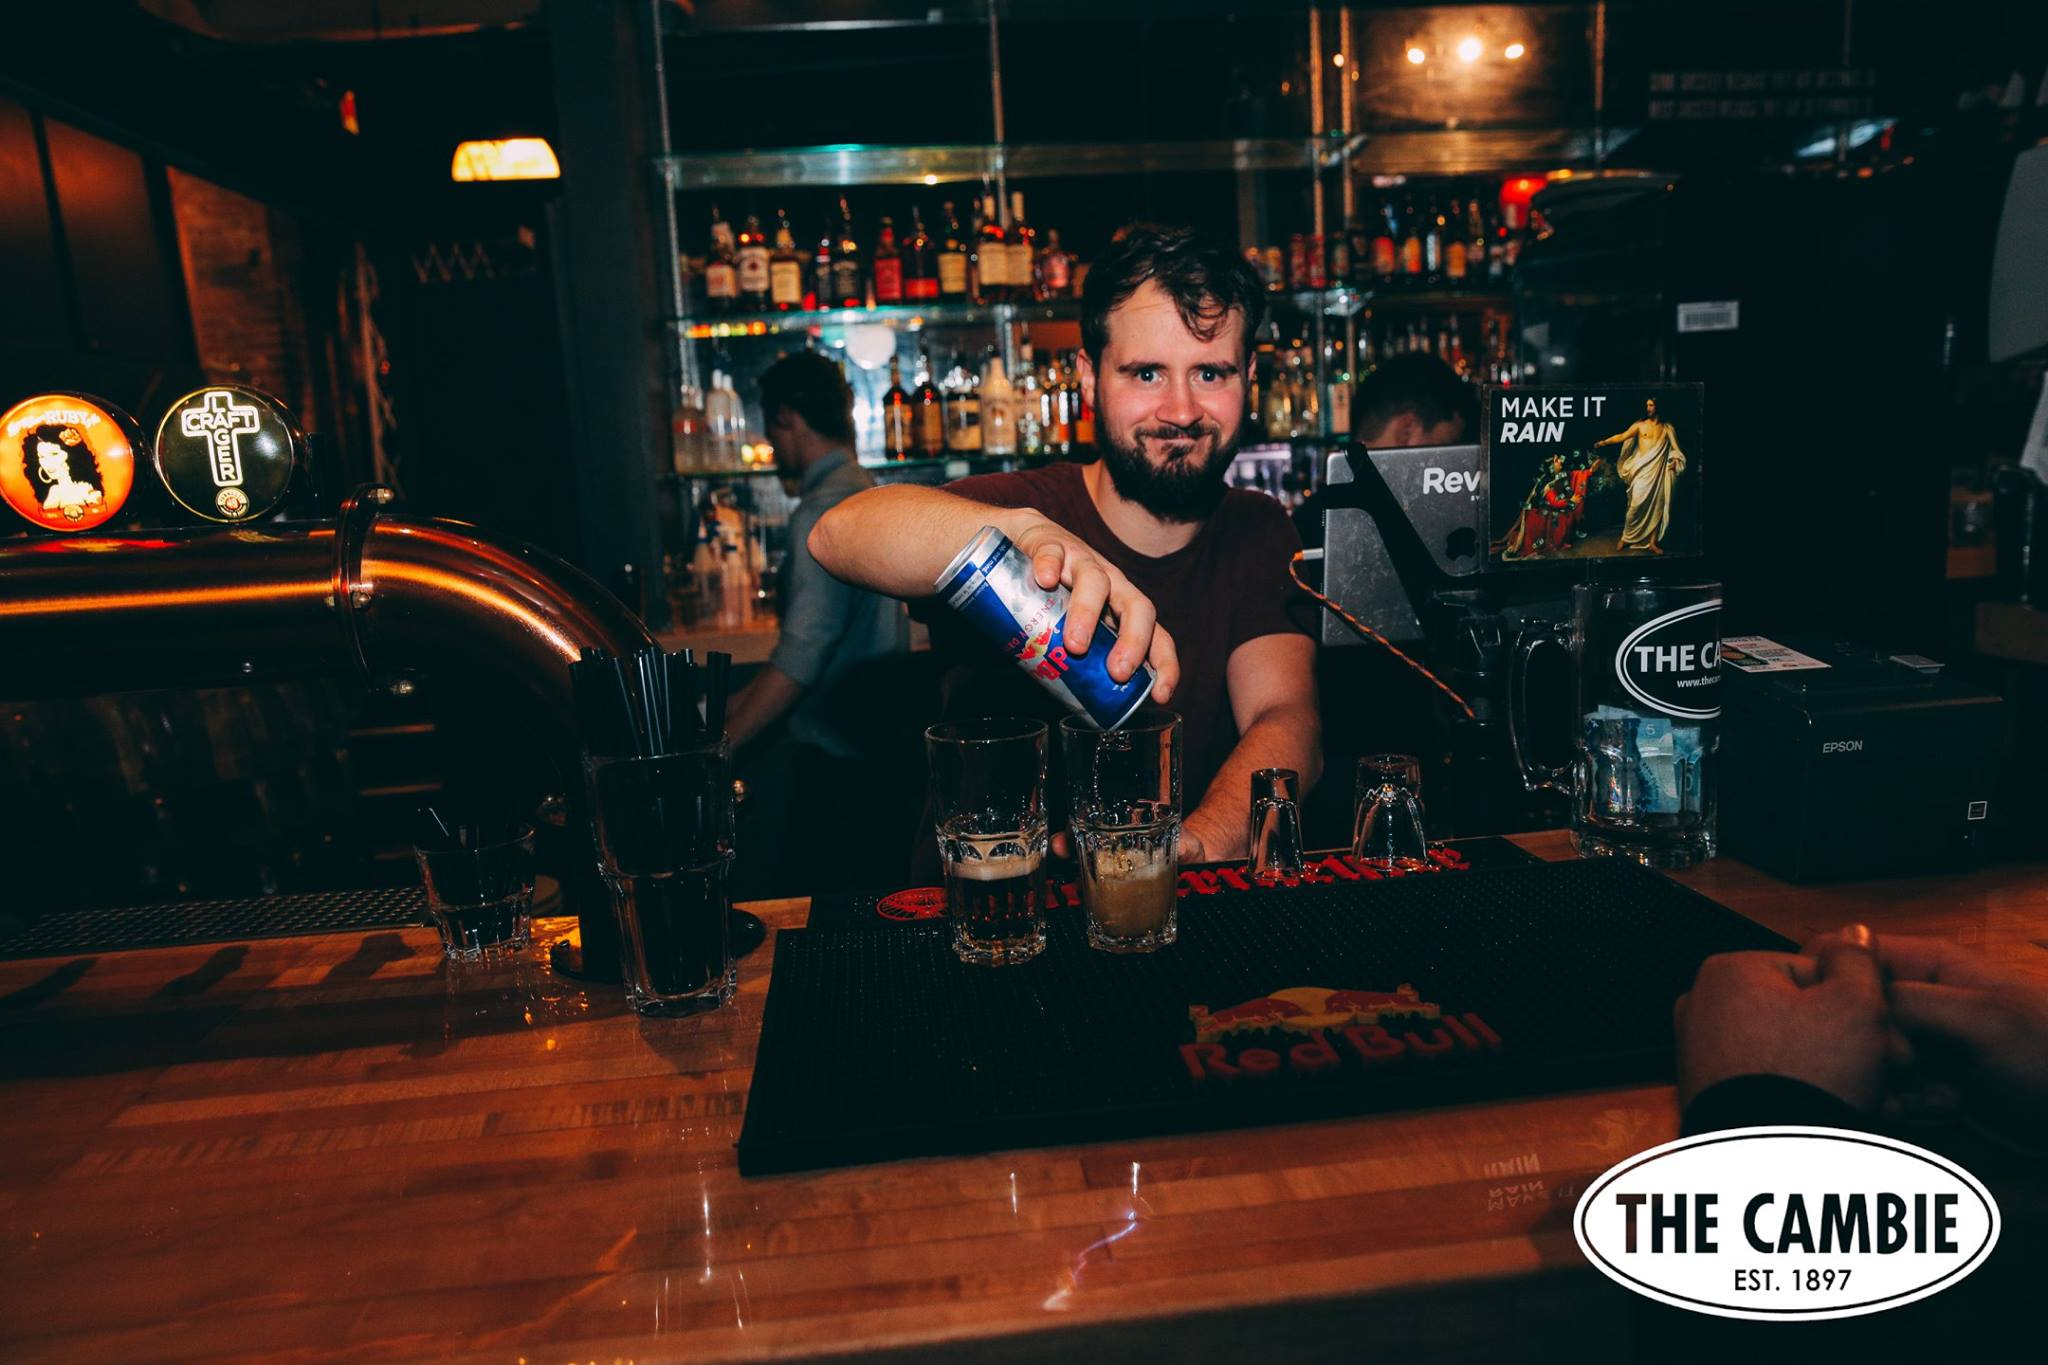 The Cambie Bar is one of the recommended spots to grab a drink in Vancouver, British Columbia as part of Dirt Road Travels.